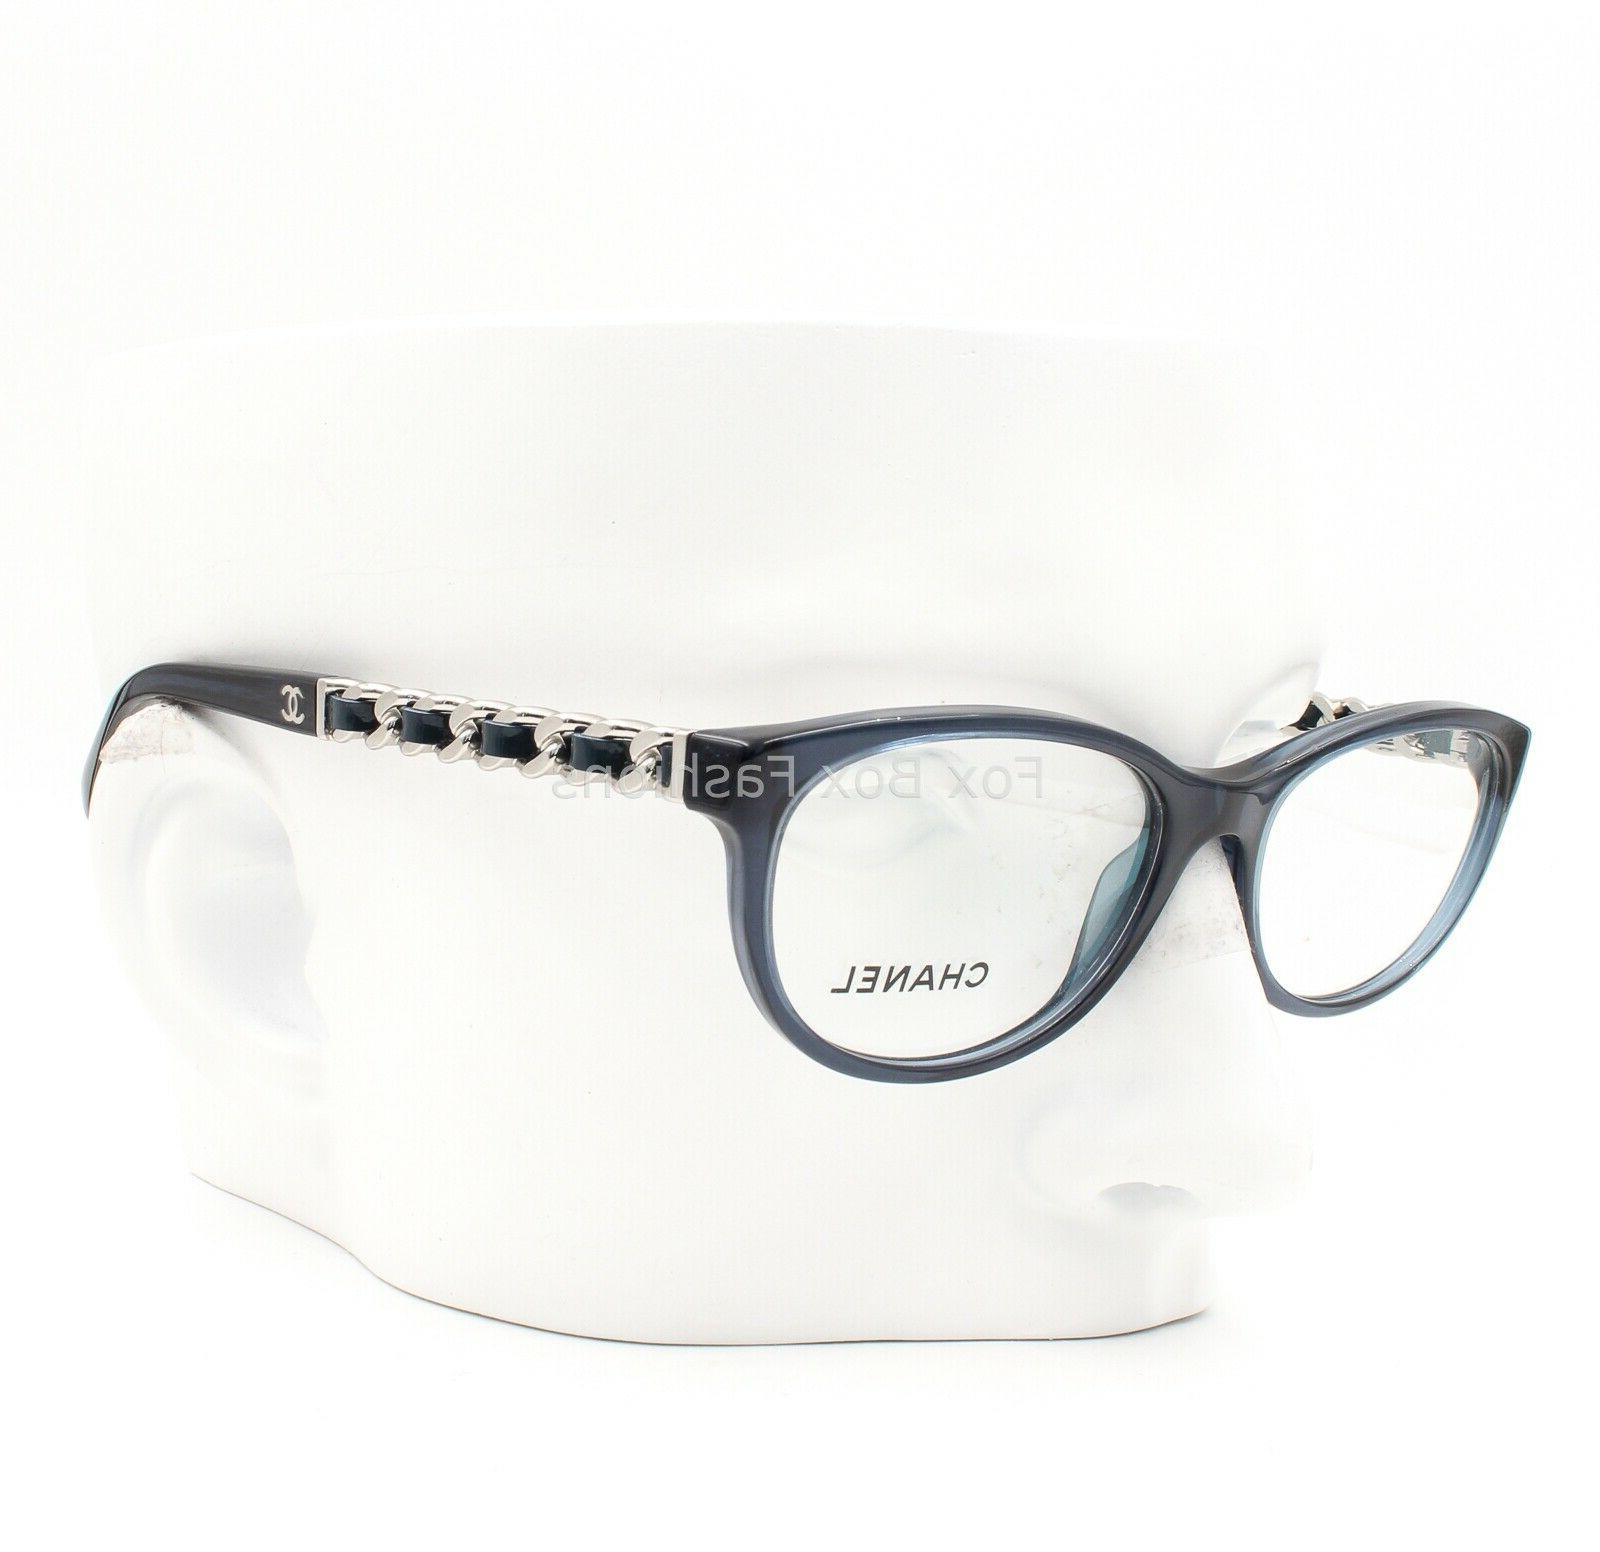 3268q 1390 eyeglasses frame glasses crystal blue